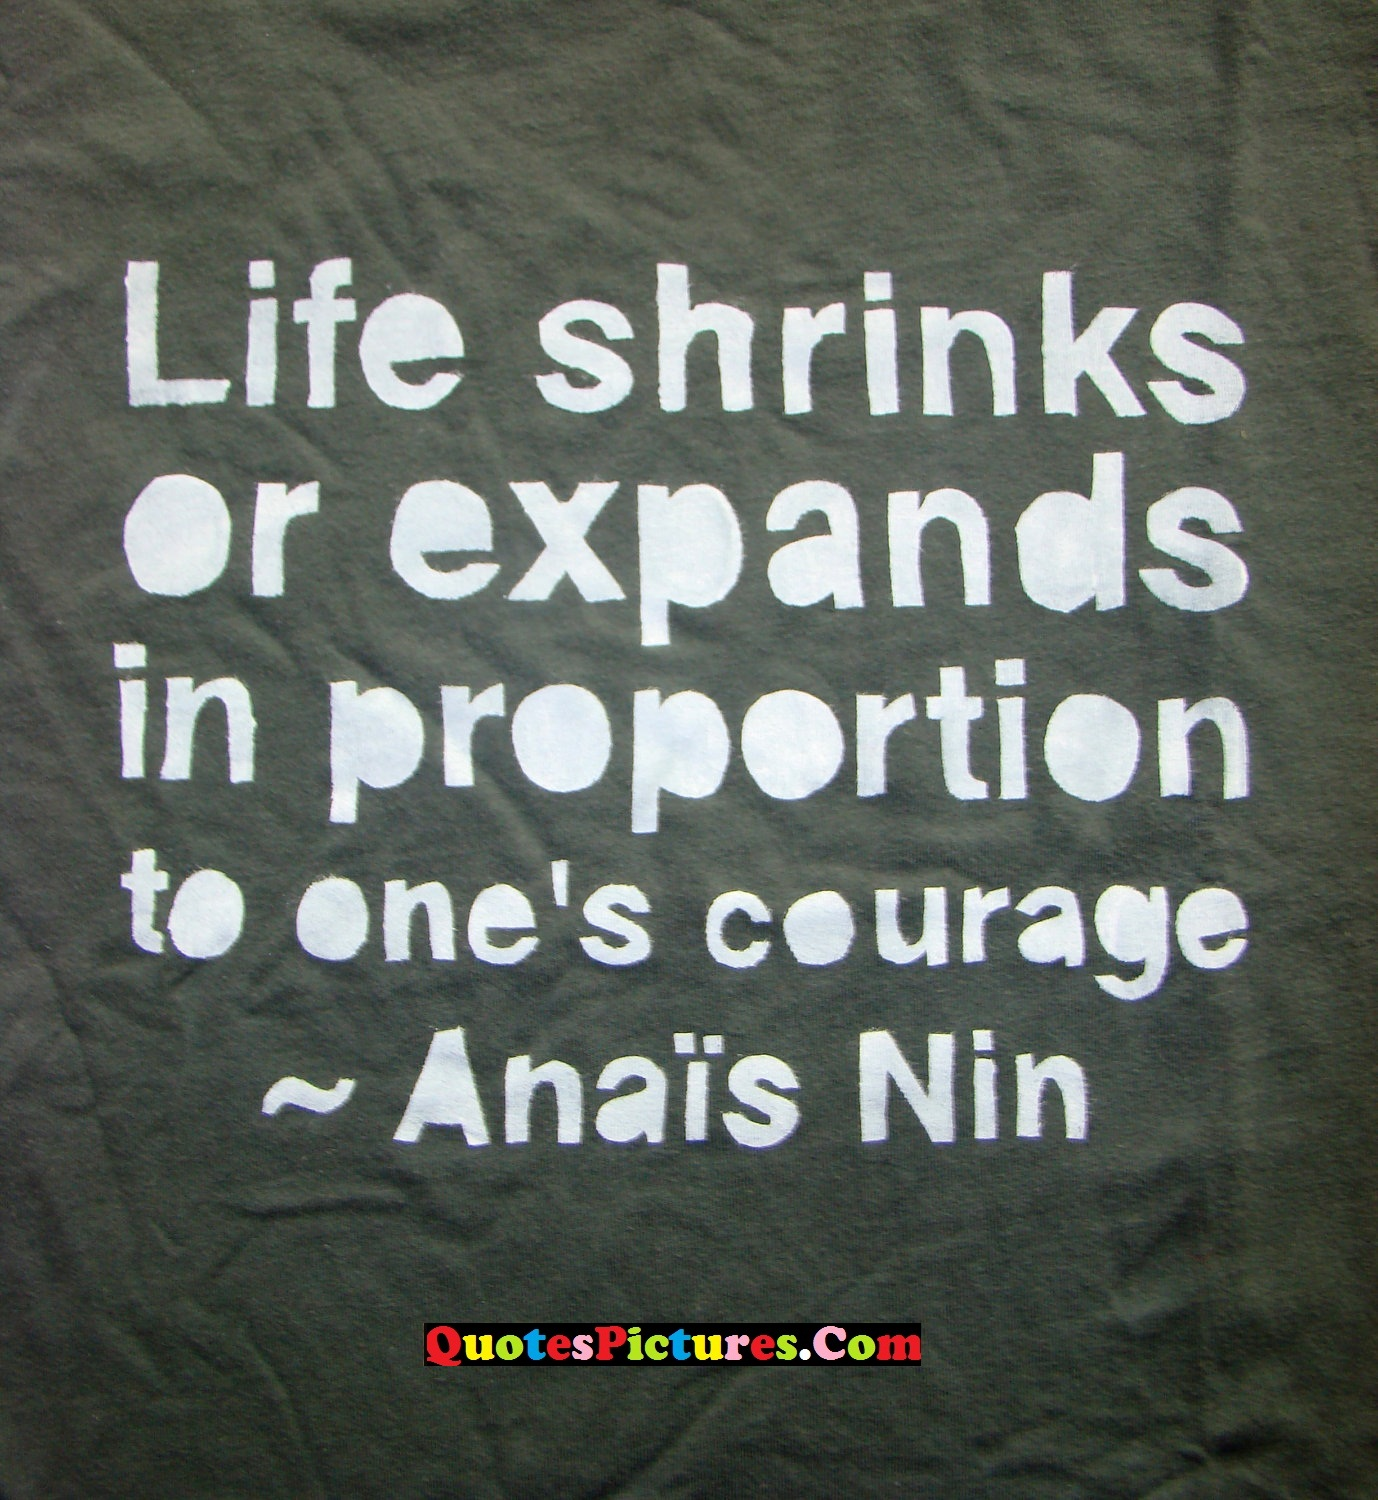 Lovely Favourite Quote - Life Shrinks Or Expands In Proportion To One's Courage  - Anai's Nin